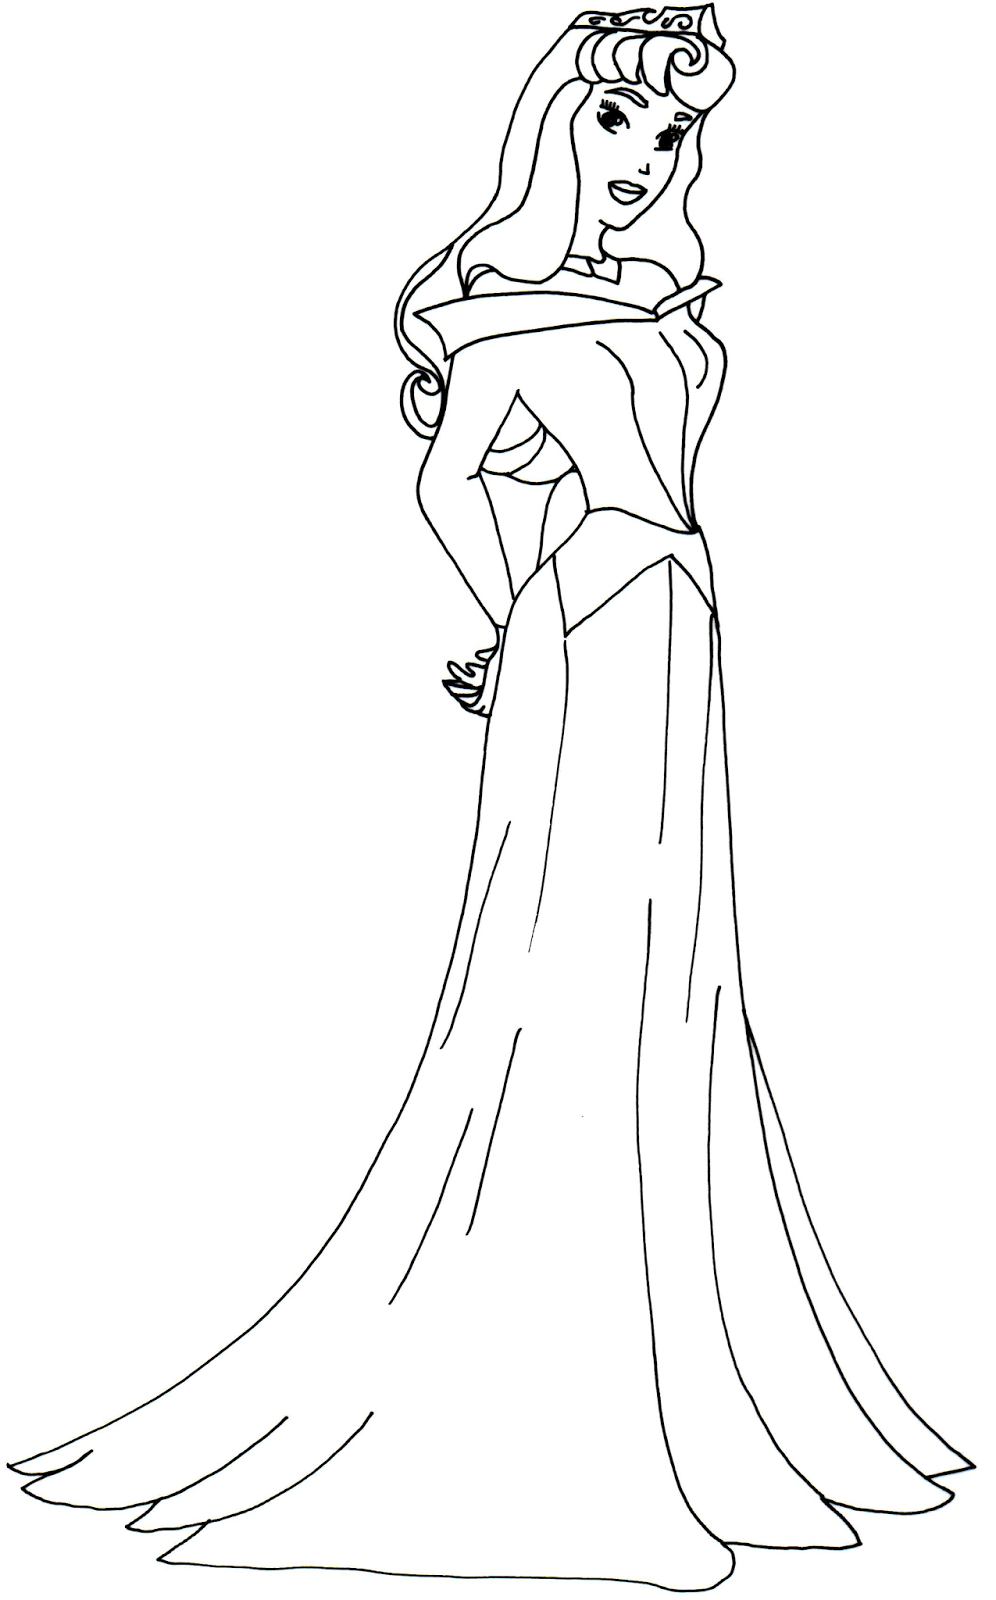 sofia the first coloring pages princess aurora sofia the first